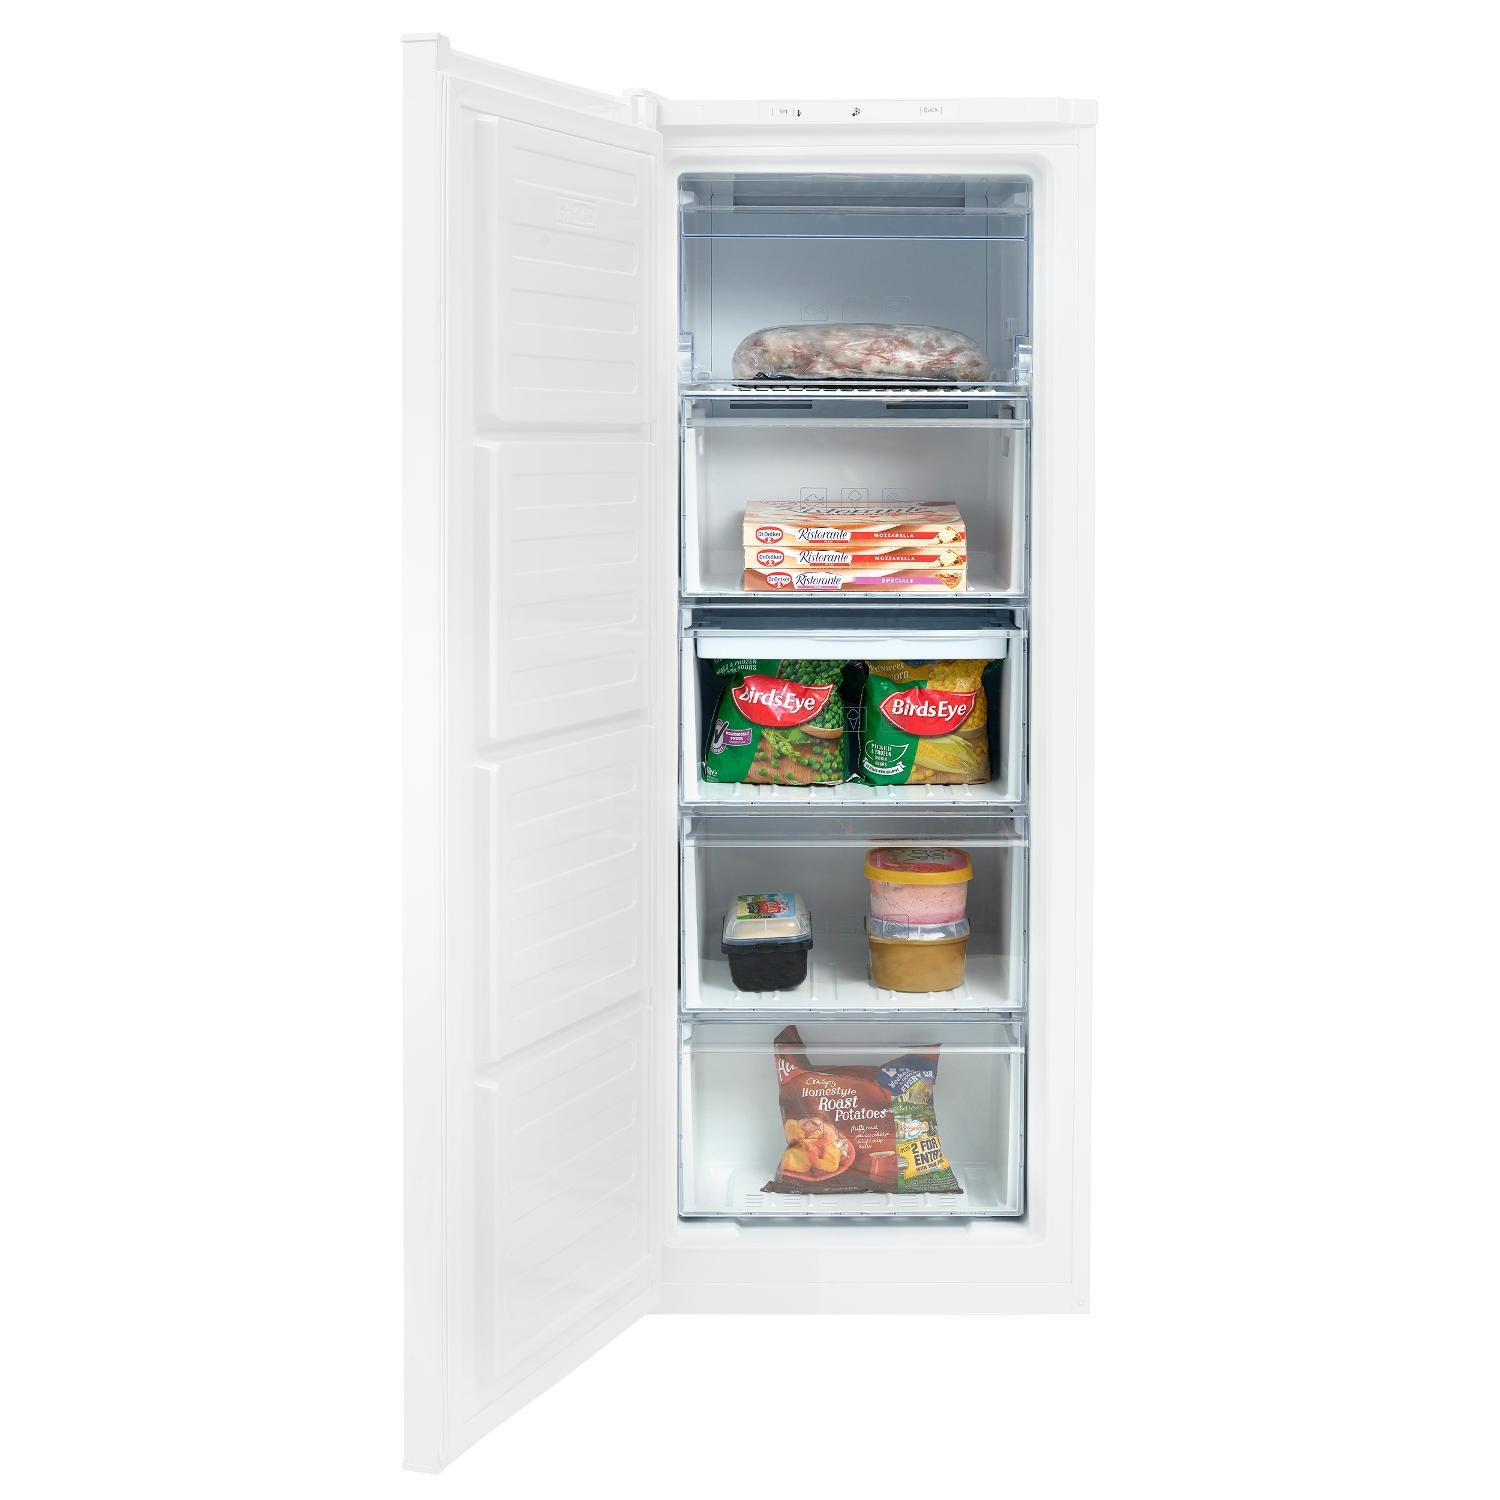 Beko 55cm Frost Free Tall Freezer - White - A+ Rated - 3